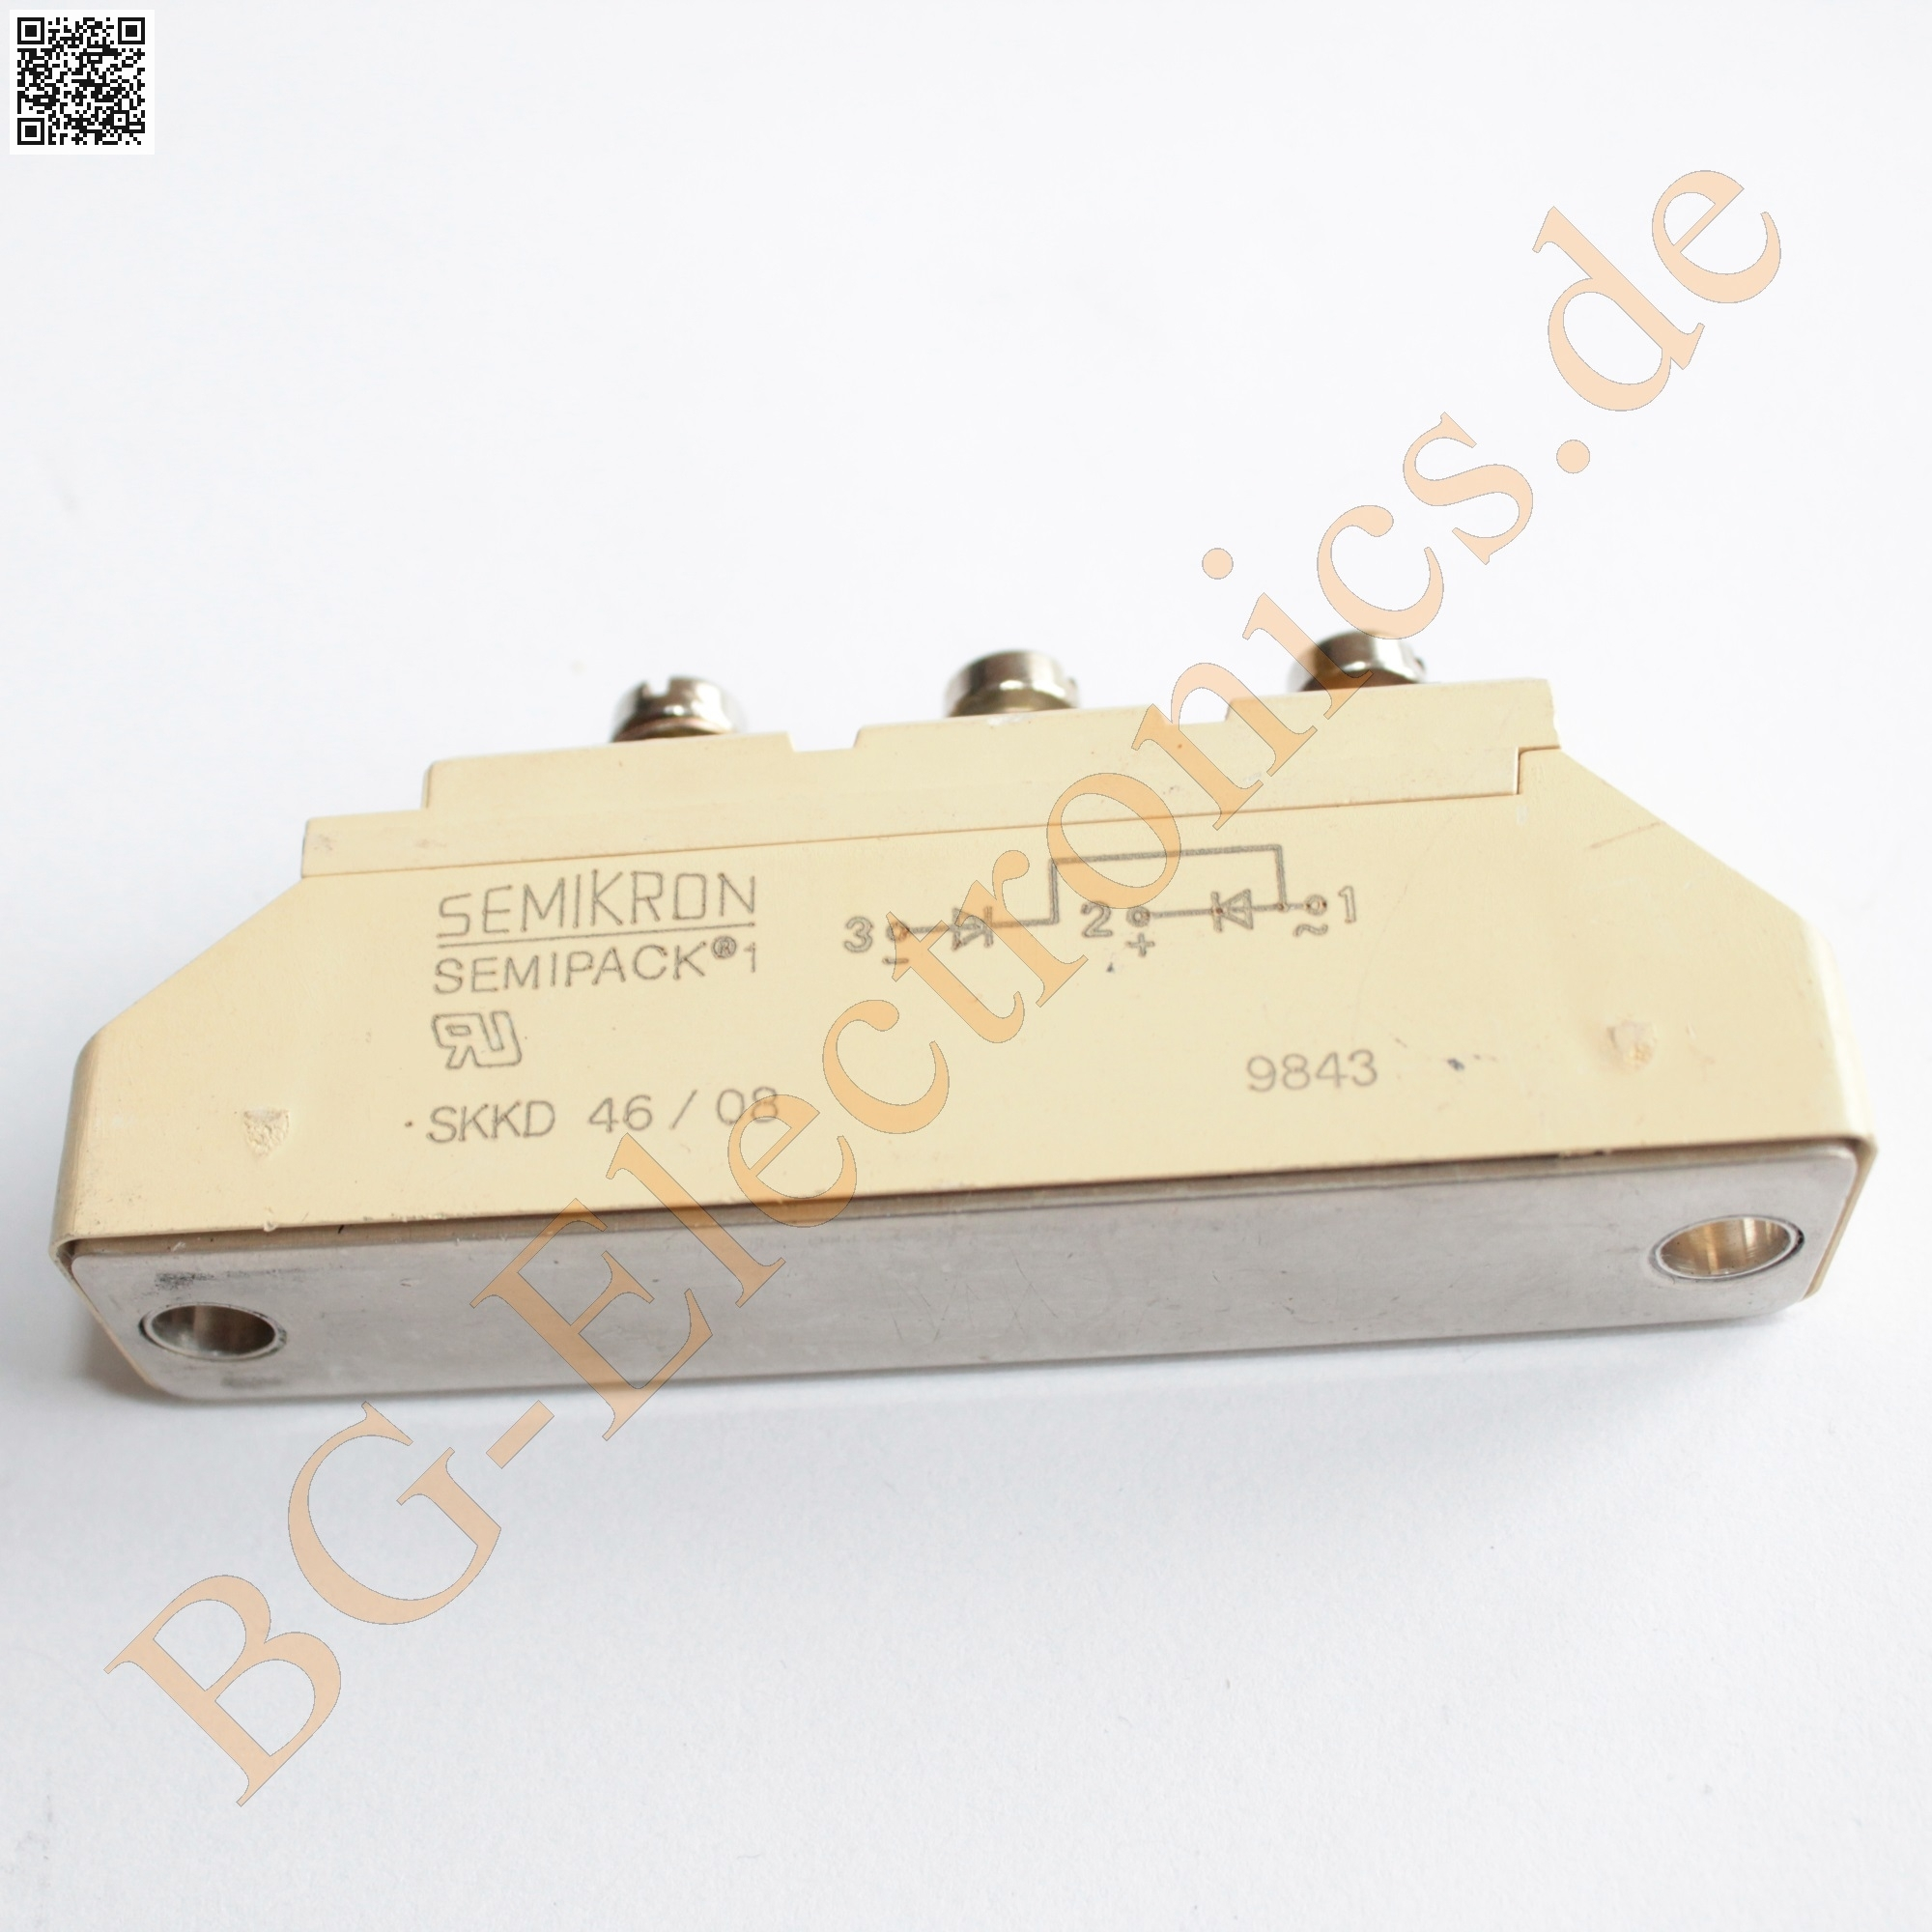 Detalles De 1 X Skkd 46 08 Rectifier Diodo Modules 46/08 Semikron picture pin.